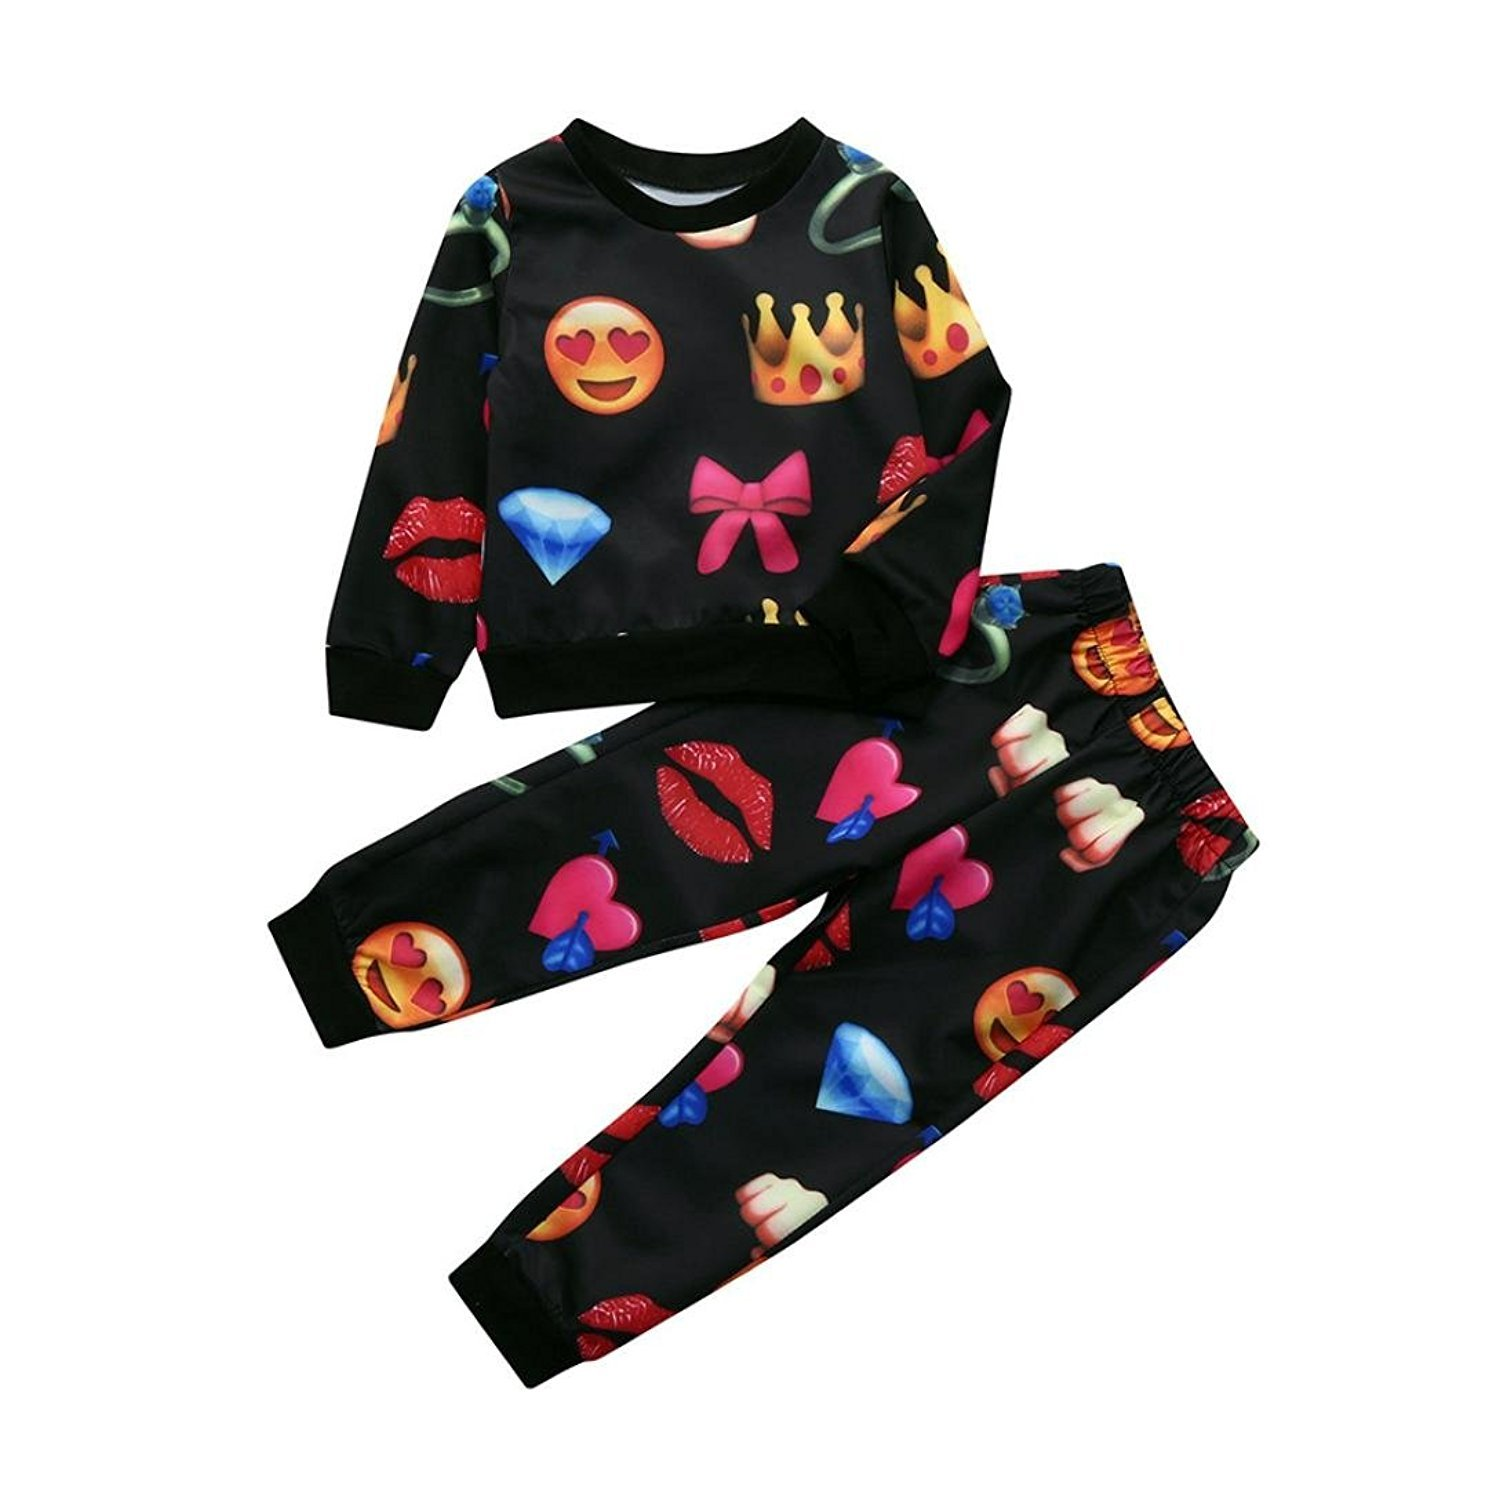 Webla Toddler Kids Boys Girls Cute Outfits T-Shirt Tops +Pants Set for 2-8 Years Old